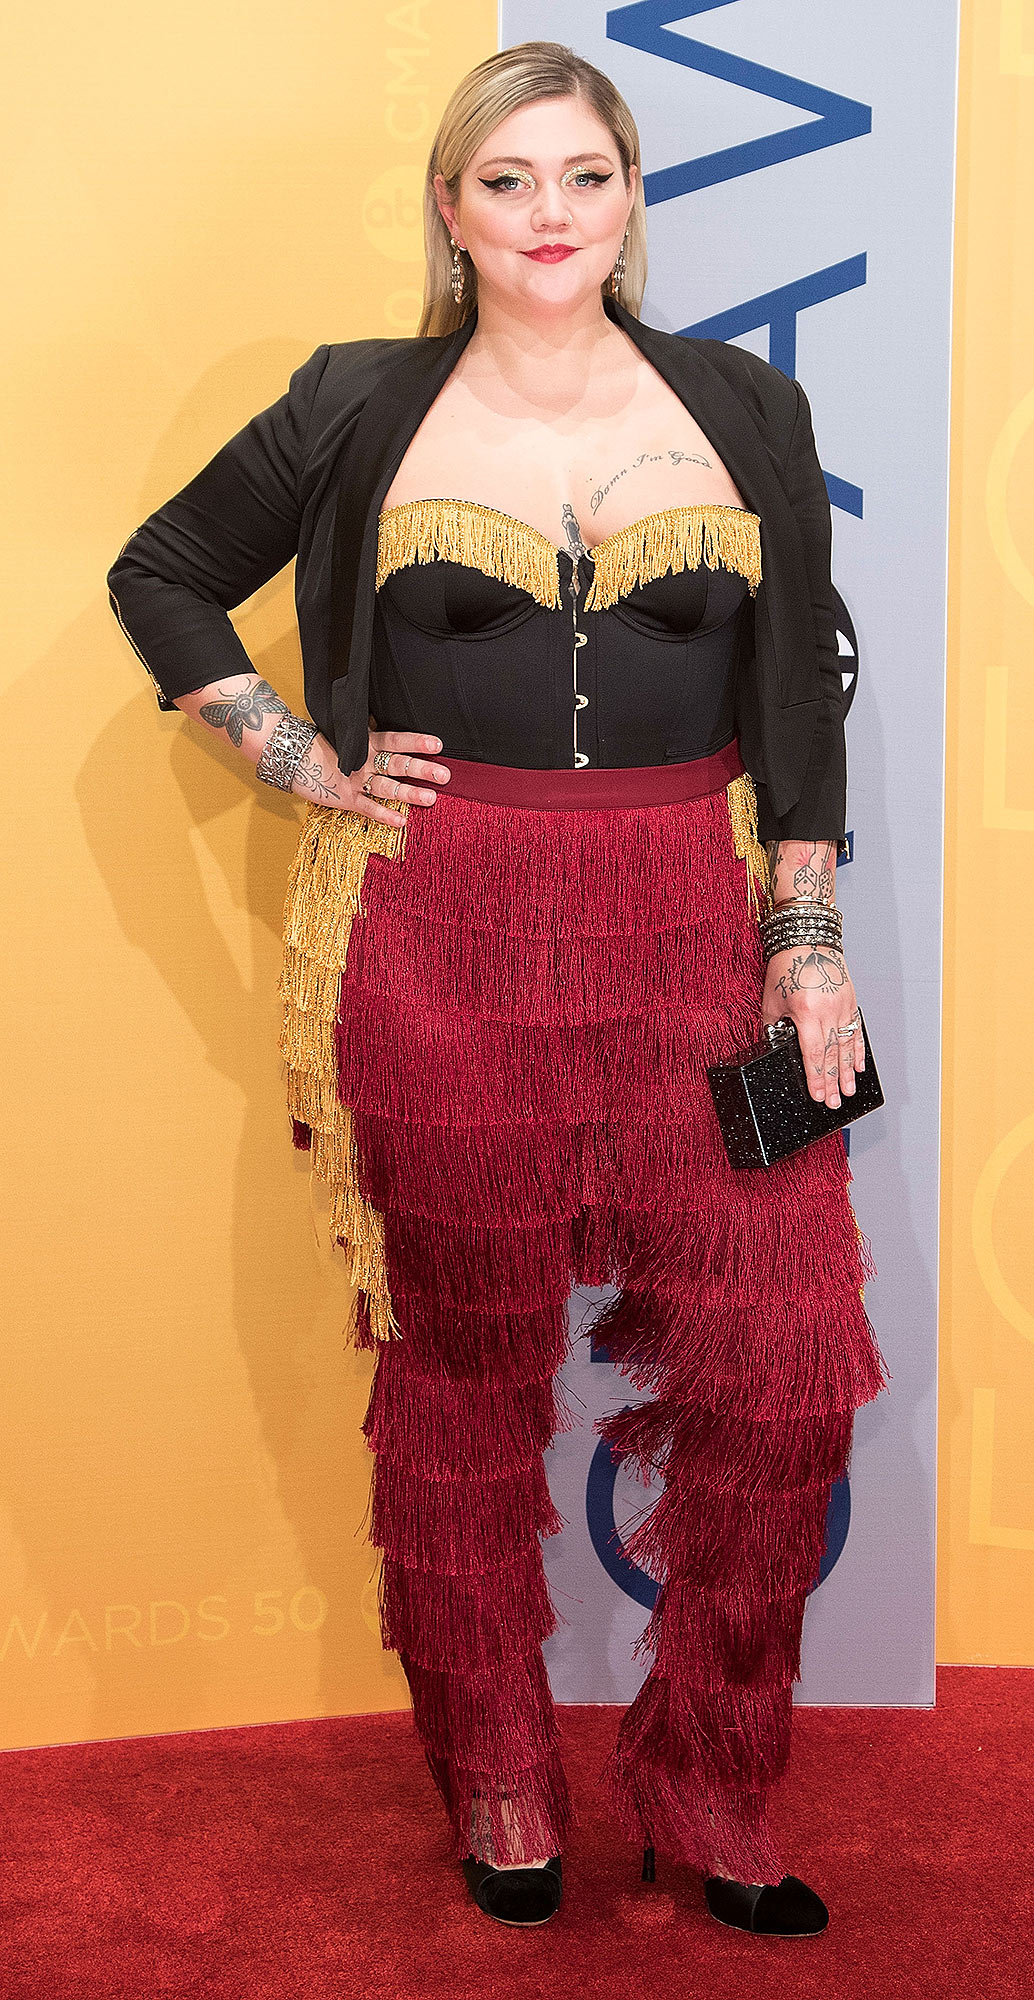 NASHVILLE, TN - NOVEMBER 02: Singer-songwriter Elle King attends the 50th annual CMA Awards at the Bridgestone Arena on November 2, 2016 in Nashville, Tennessee. (Photo by Taylor Hill/Getty Images)